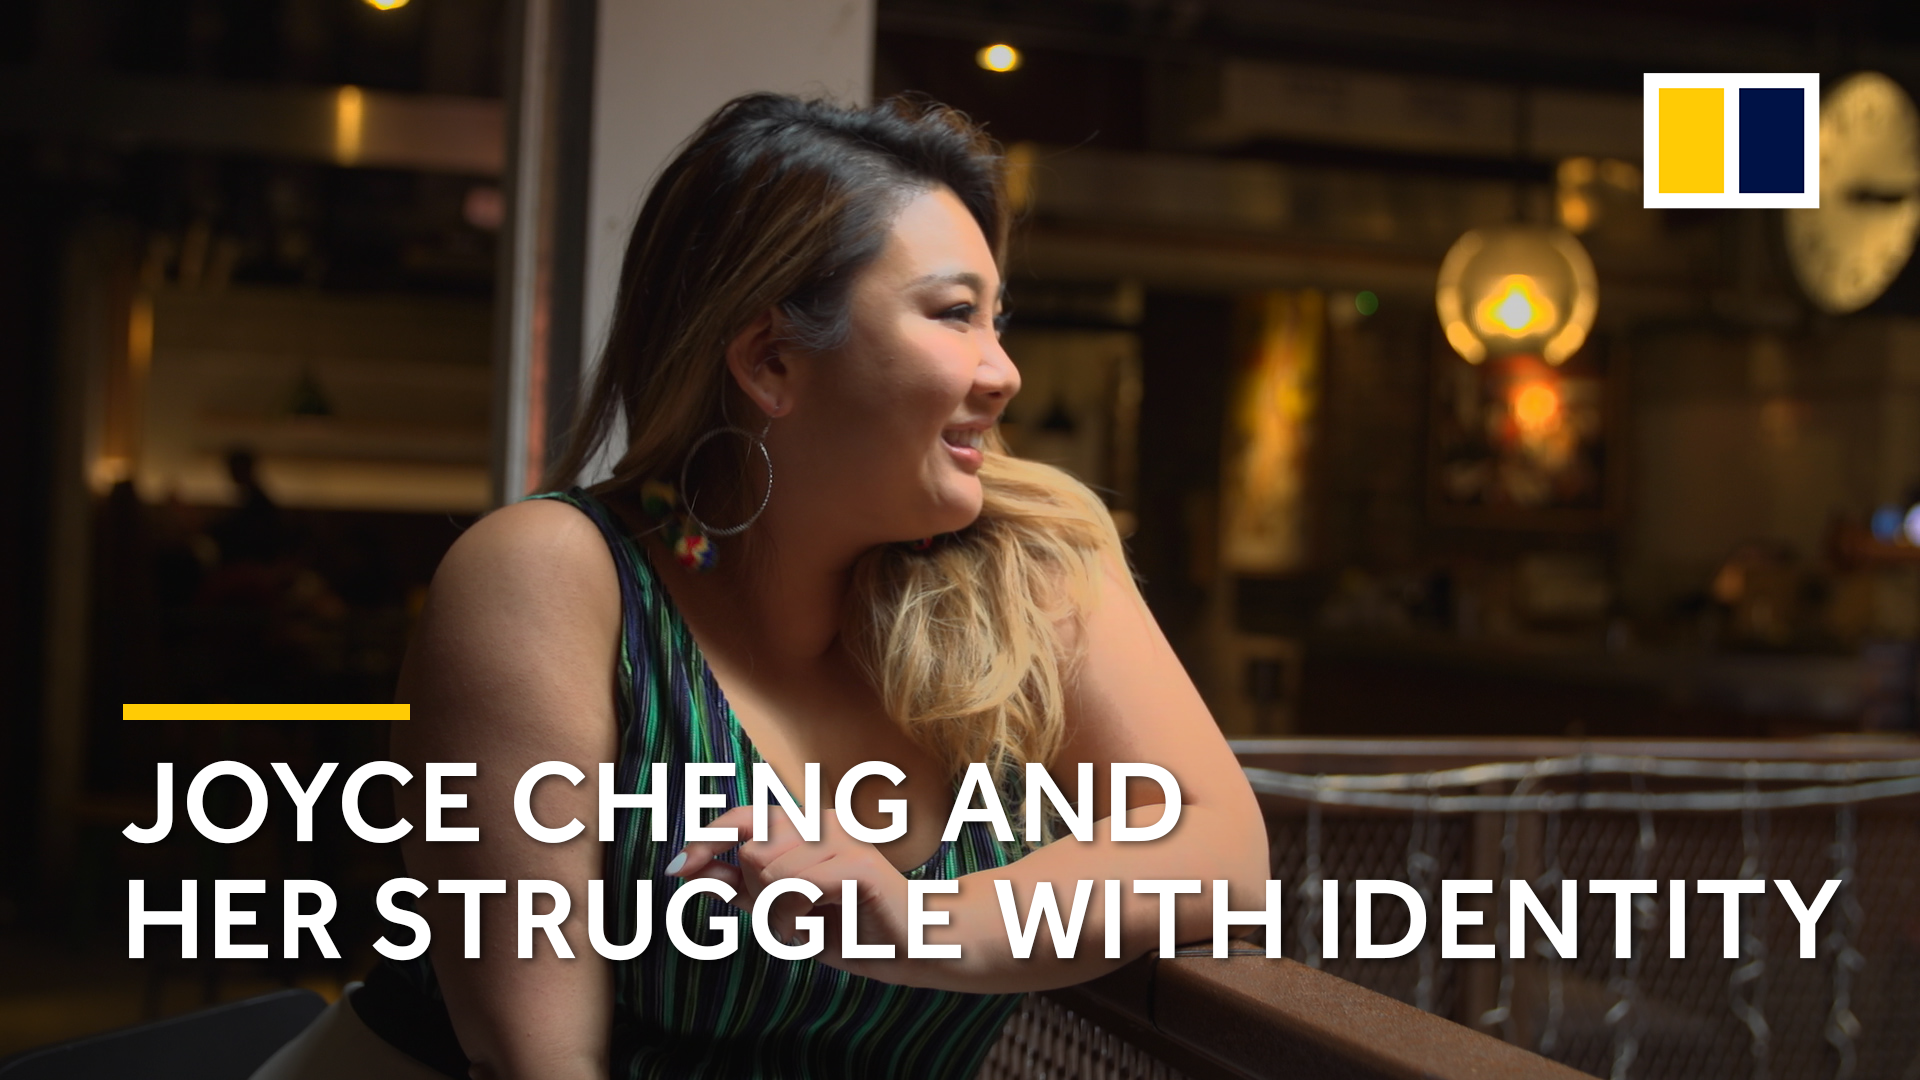 Joyce Cheng On Defying The Haters And Her First Solo Concerts In